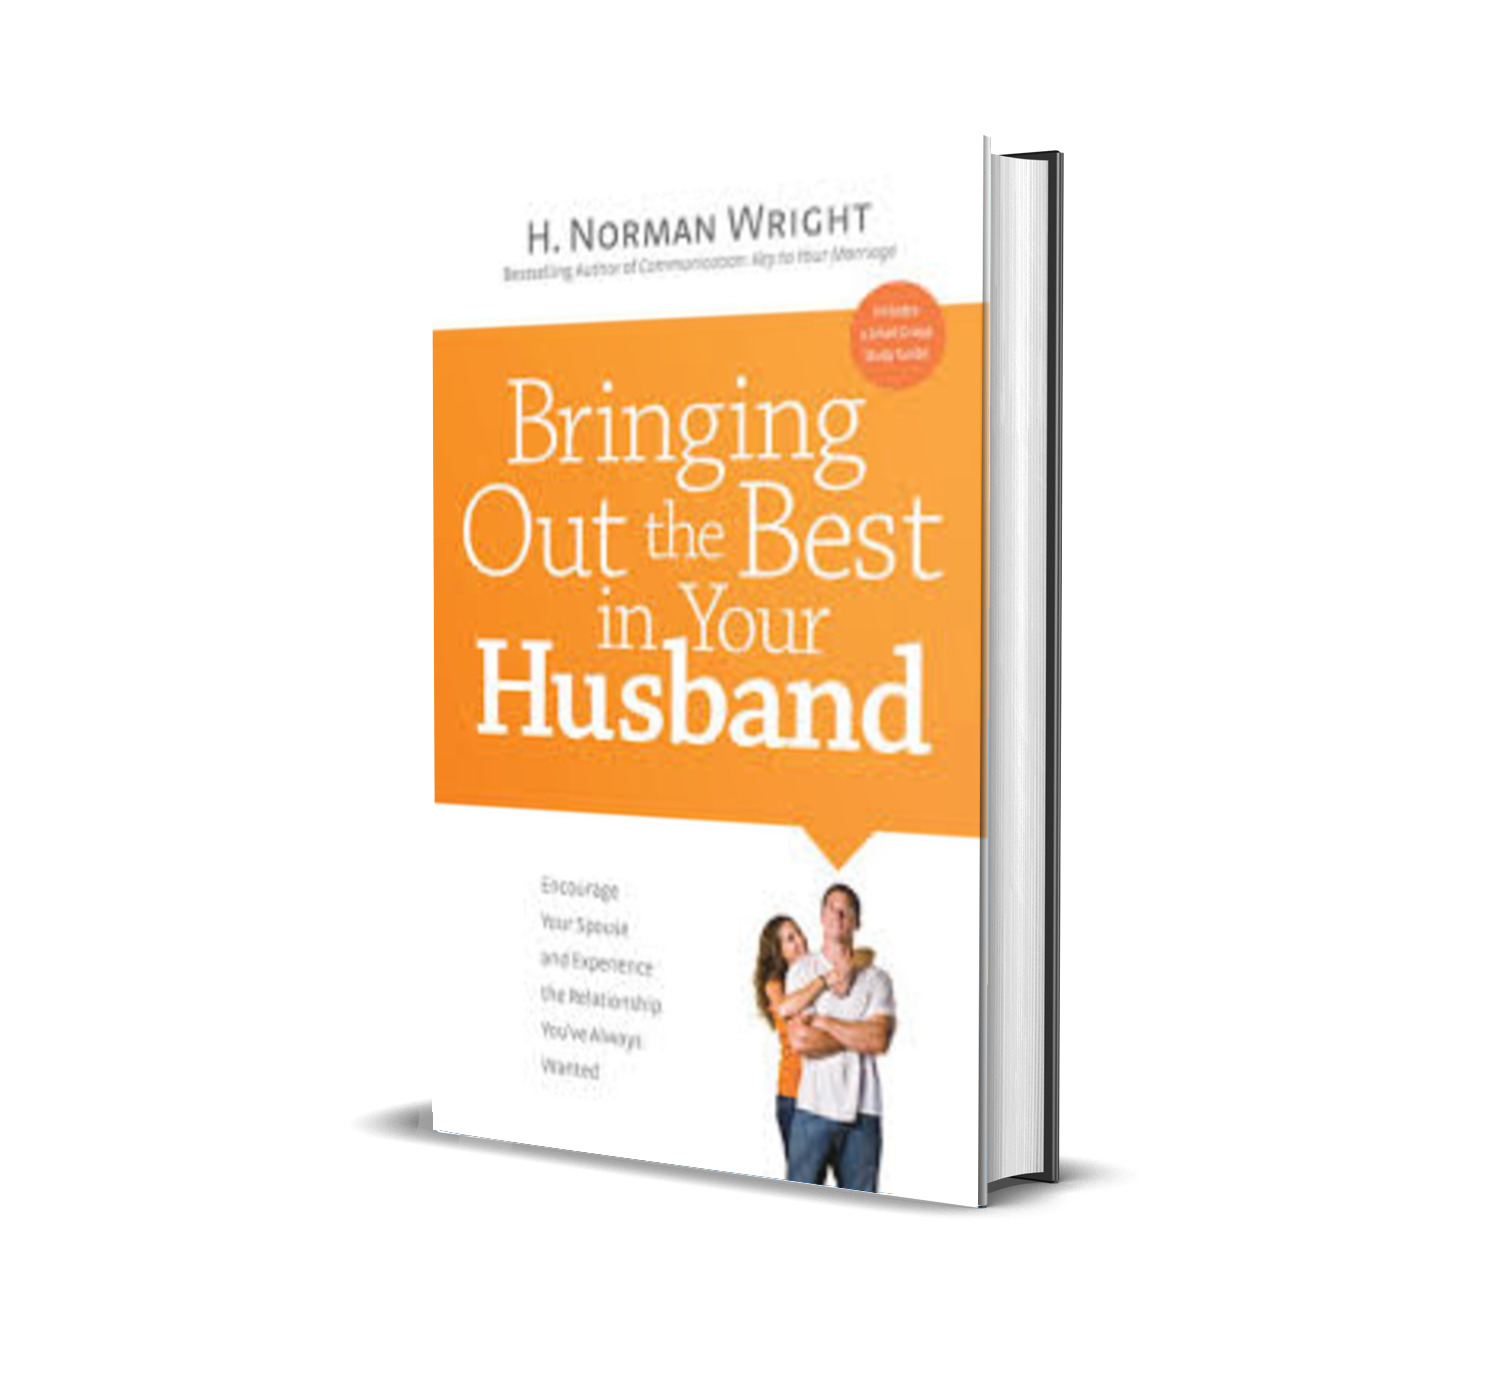 BRINGING OUT THE BEST IN YOUR HUSBAND - NORMAN WRIGHT